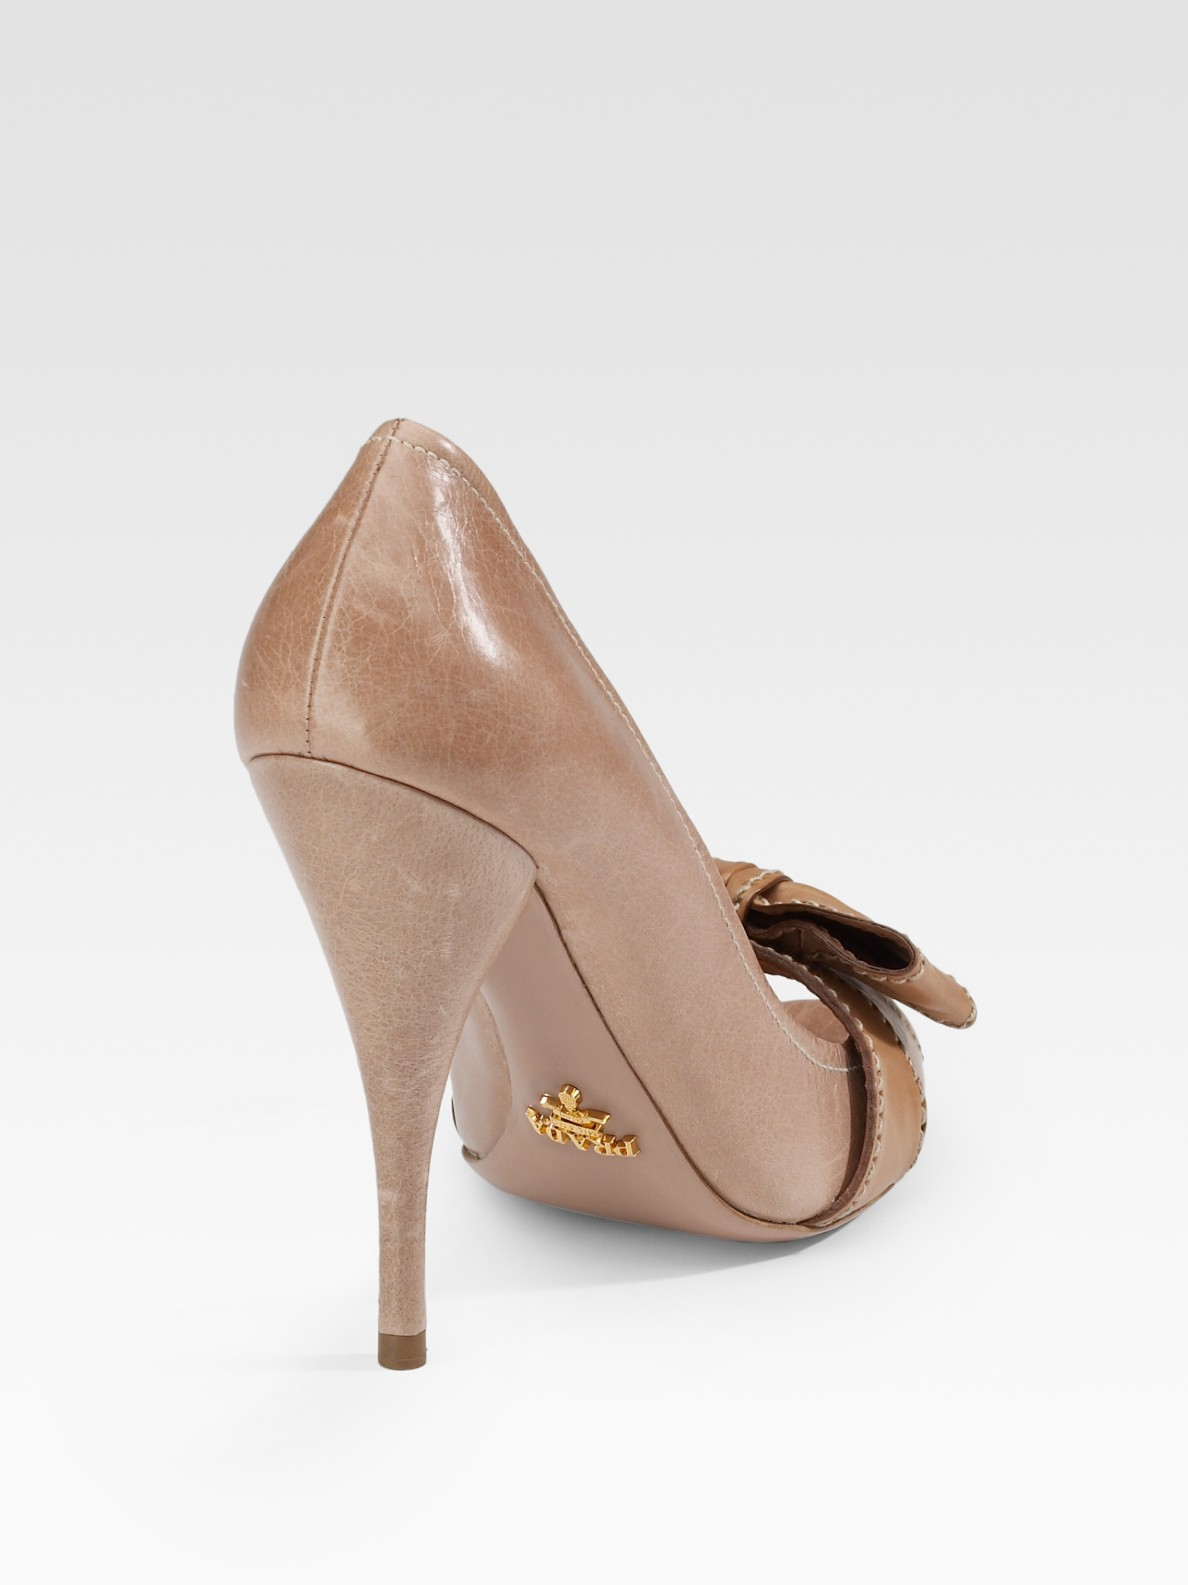 Lyst - Prada Bow Peep-... Ivanka Trump Shoes Nordstrom